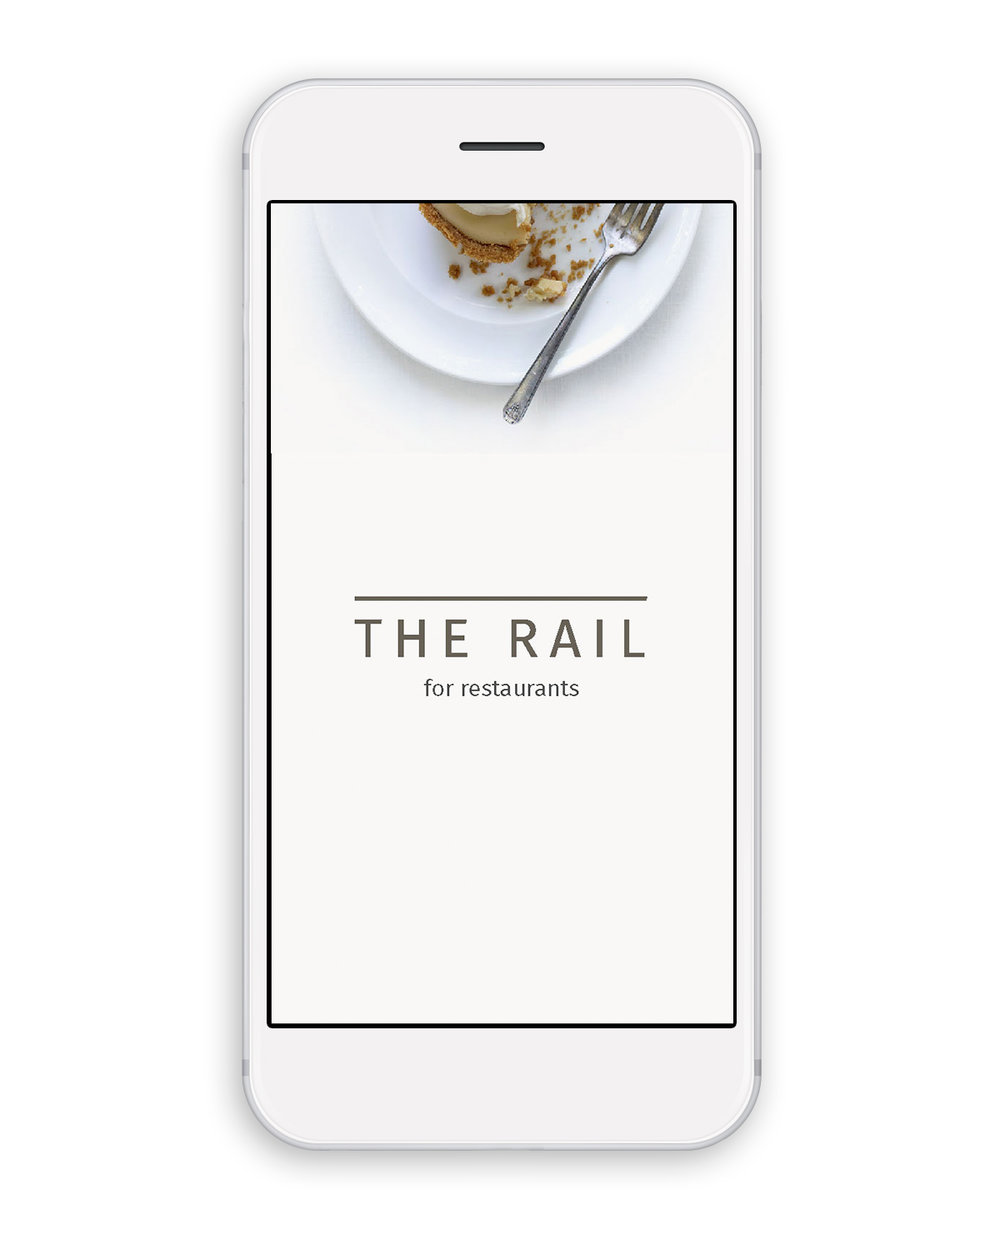 WBCG_TheRail_Phone2-1.jpg